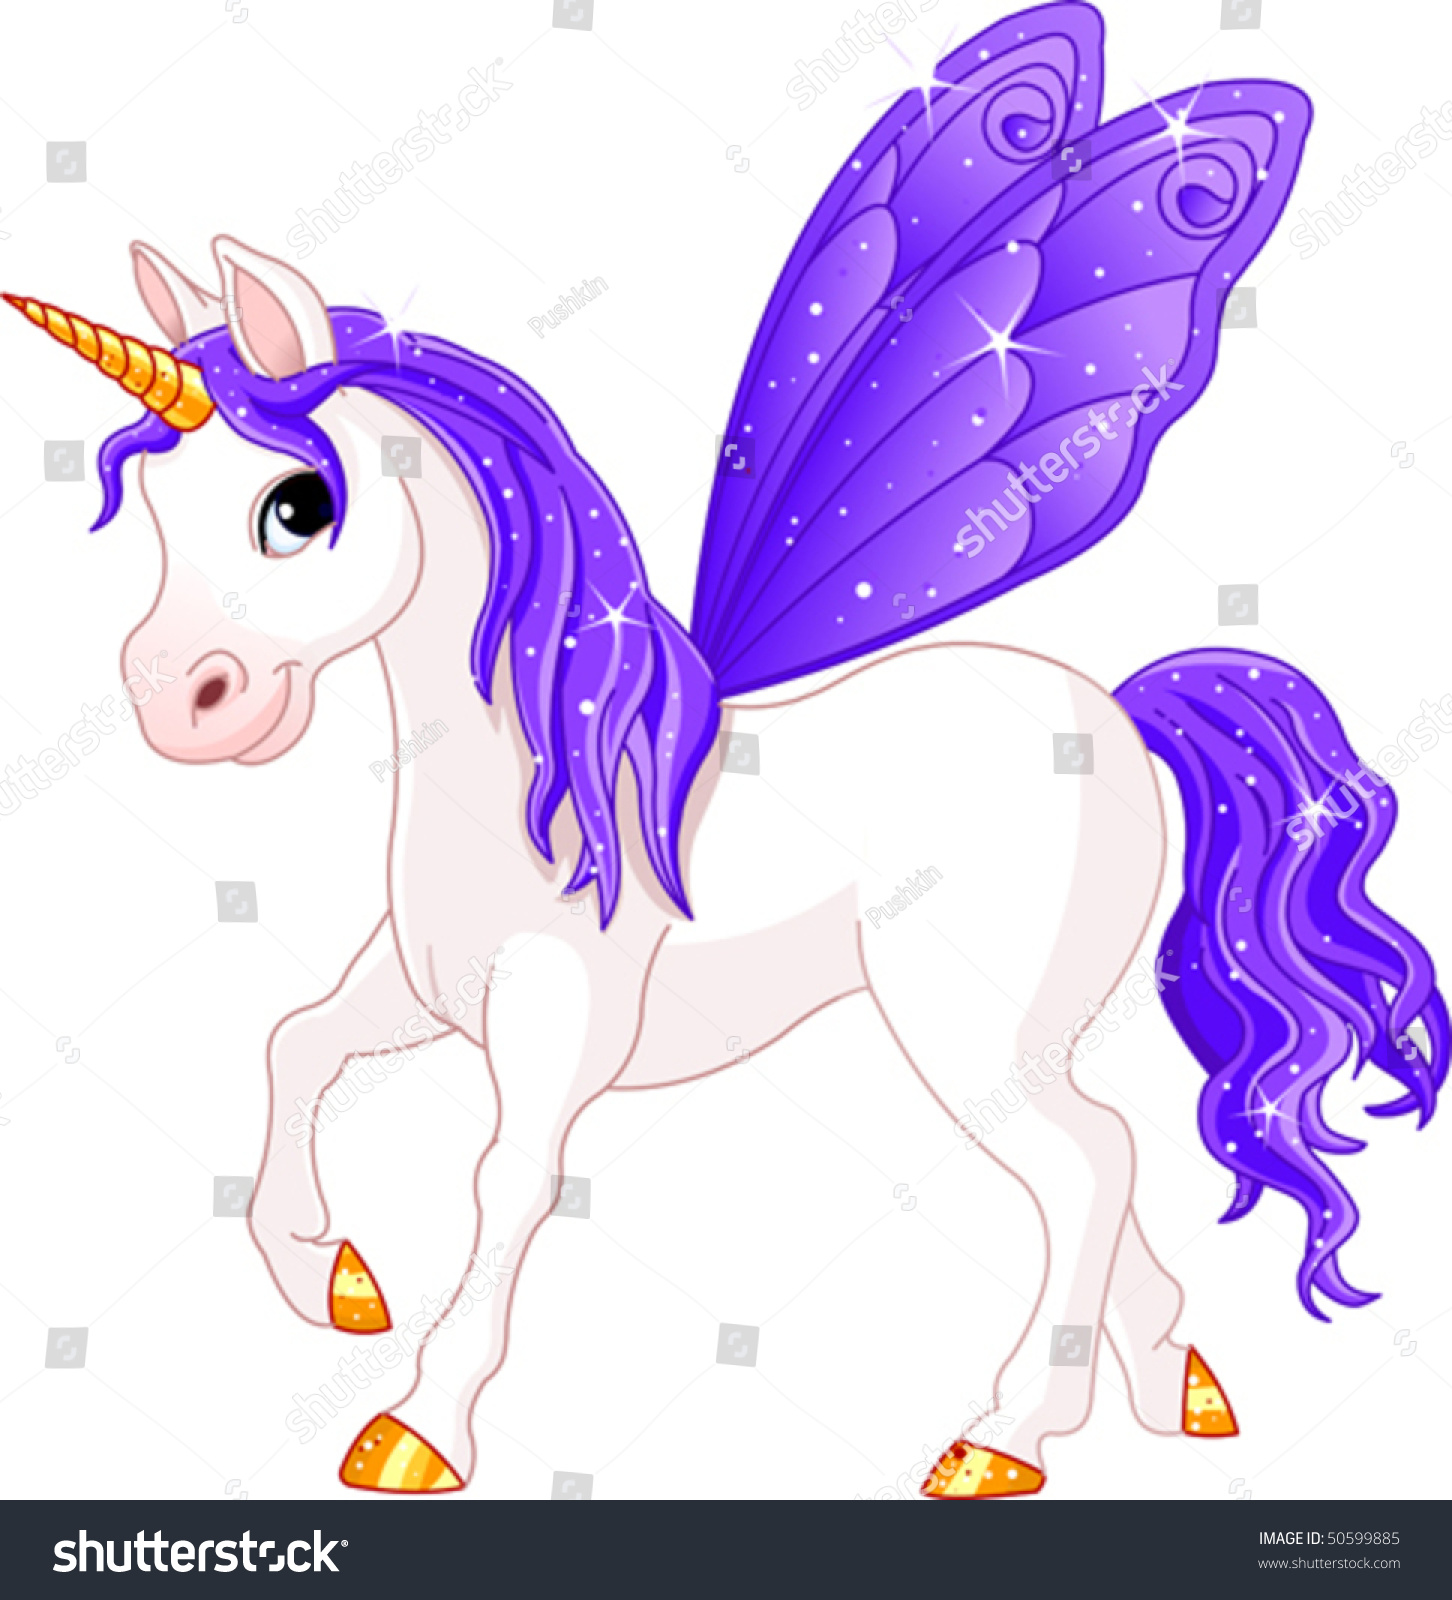 Violet Cute Winged Horse Of Fairy Tail. (Rainbow Colored